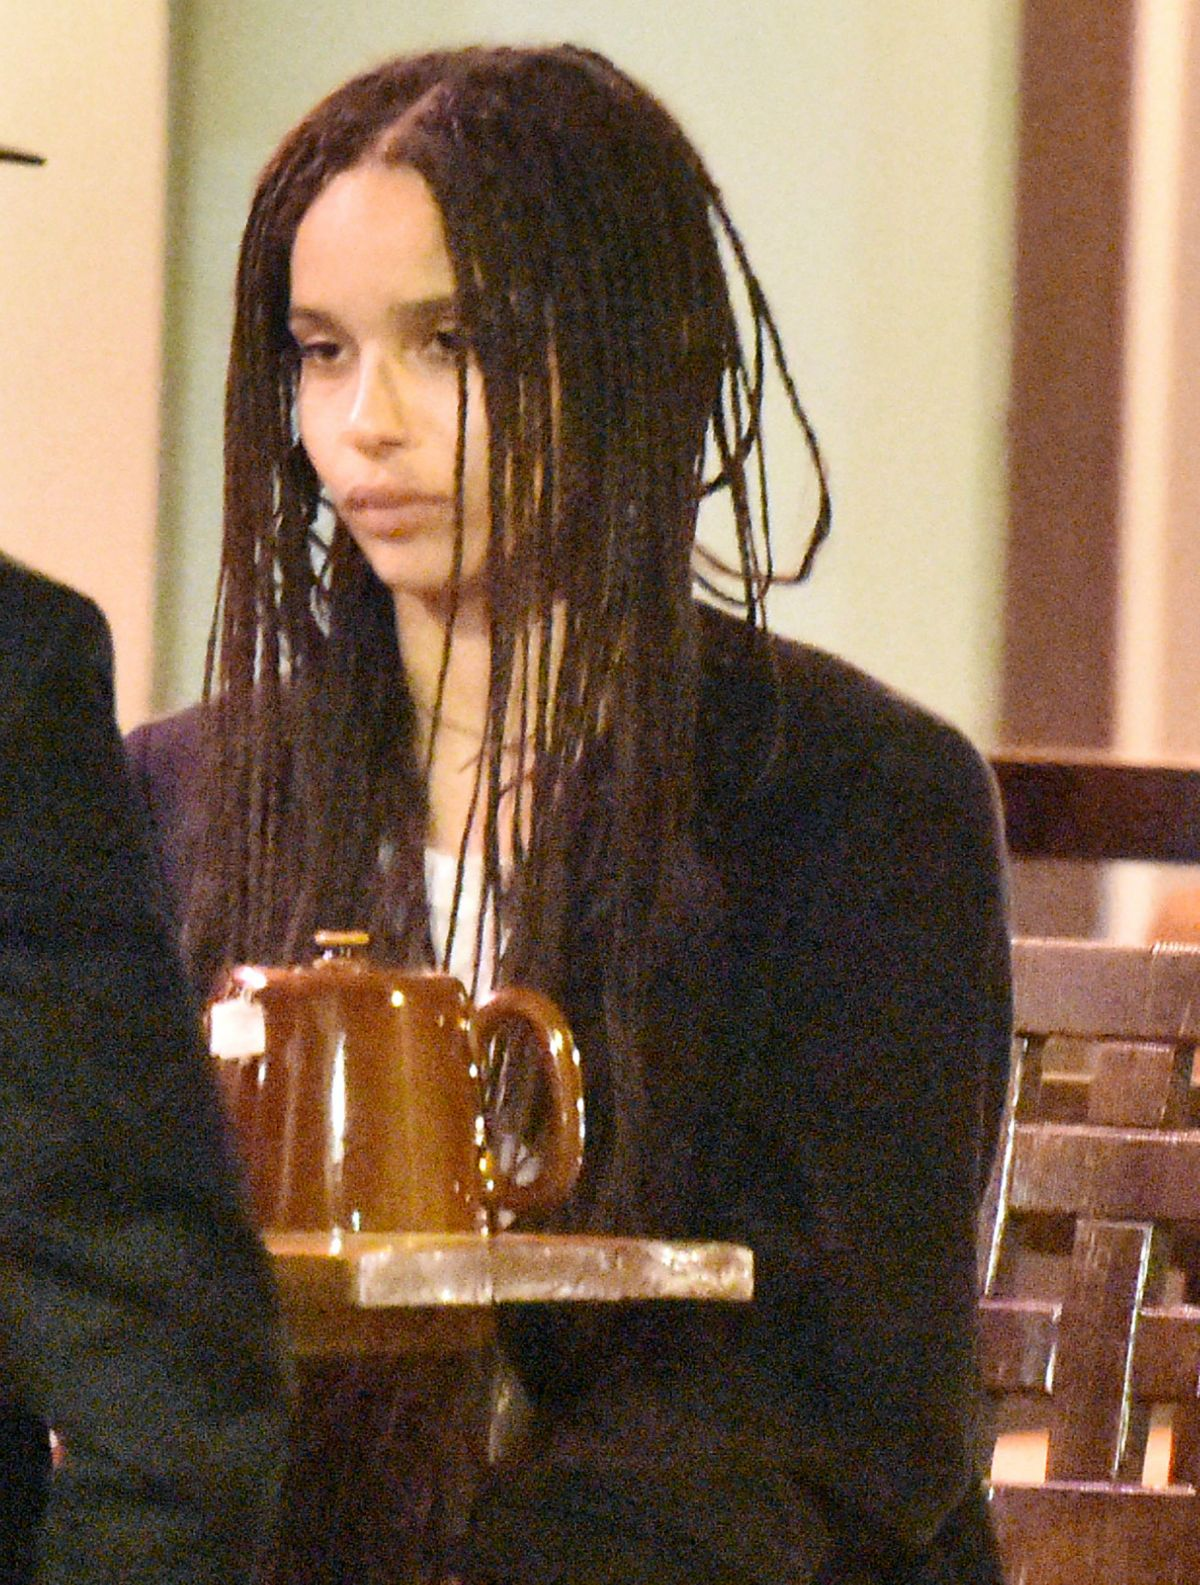 ZOE KRAVITZ Night Out in Cannes